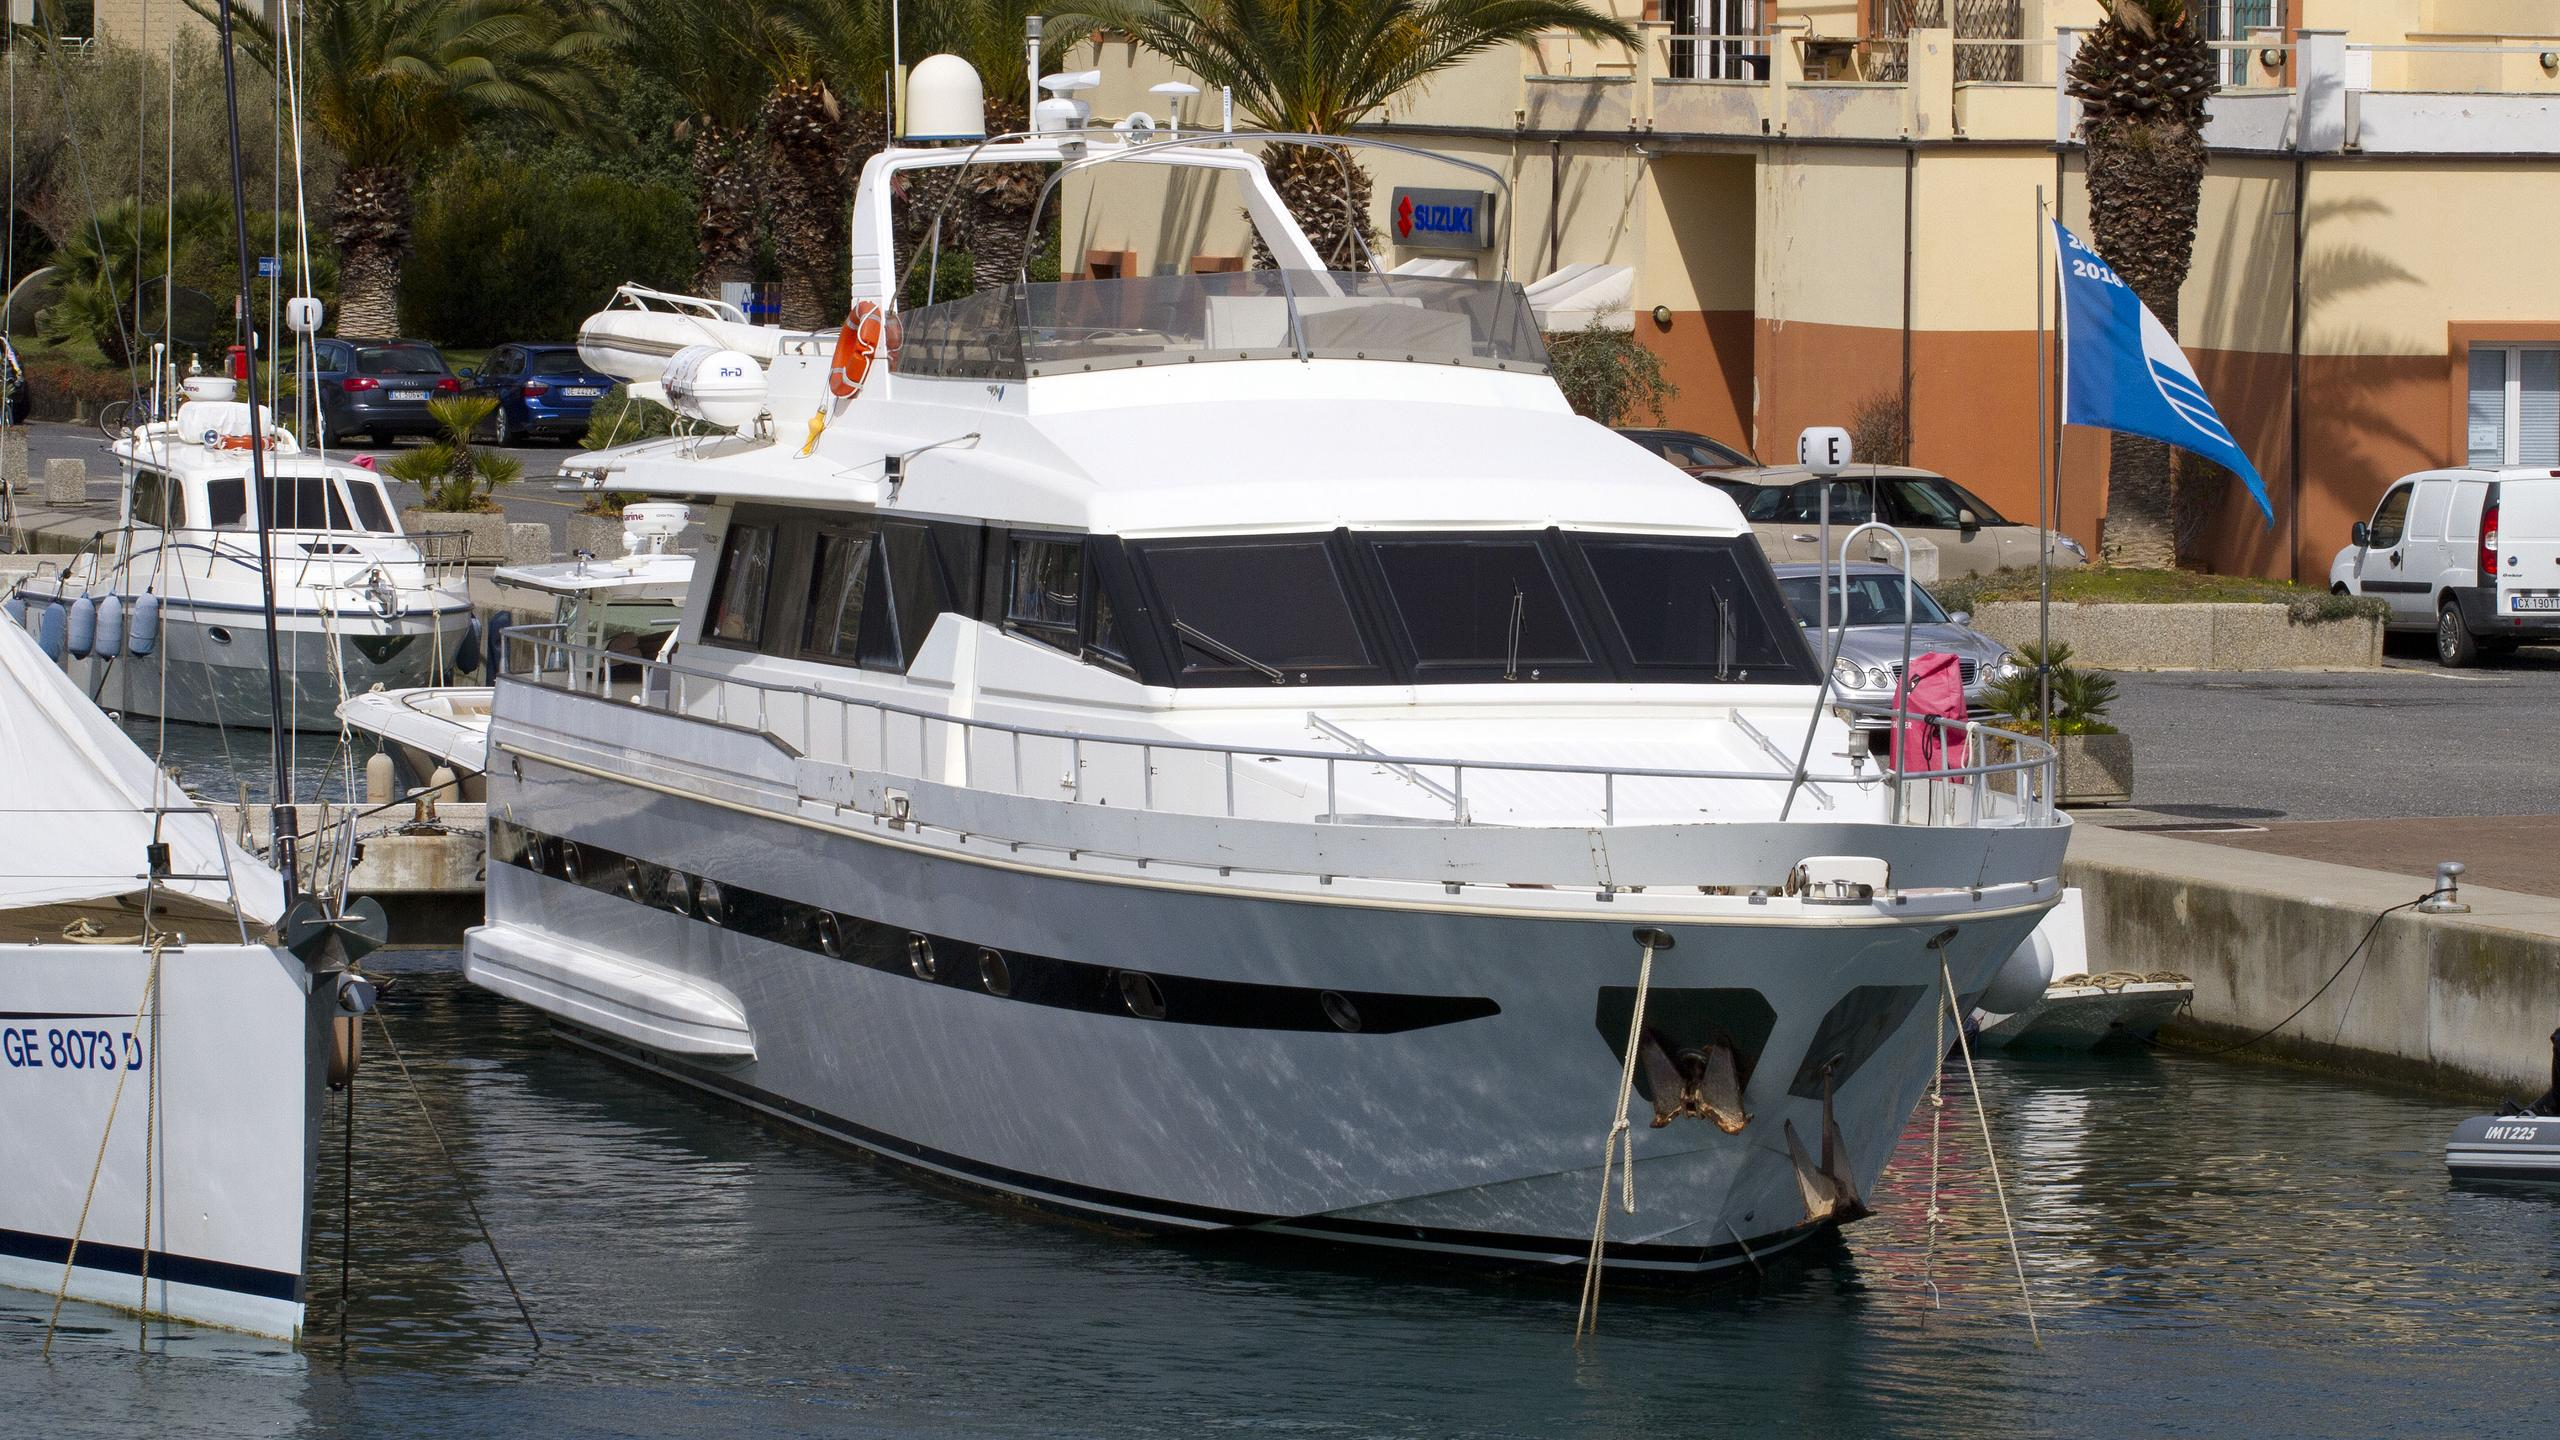 river-d-motor-yacht-falcon-82s-1987-25m-bow